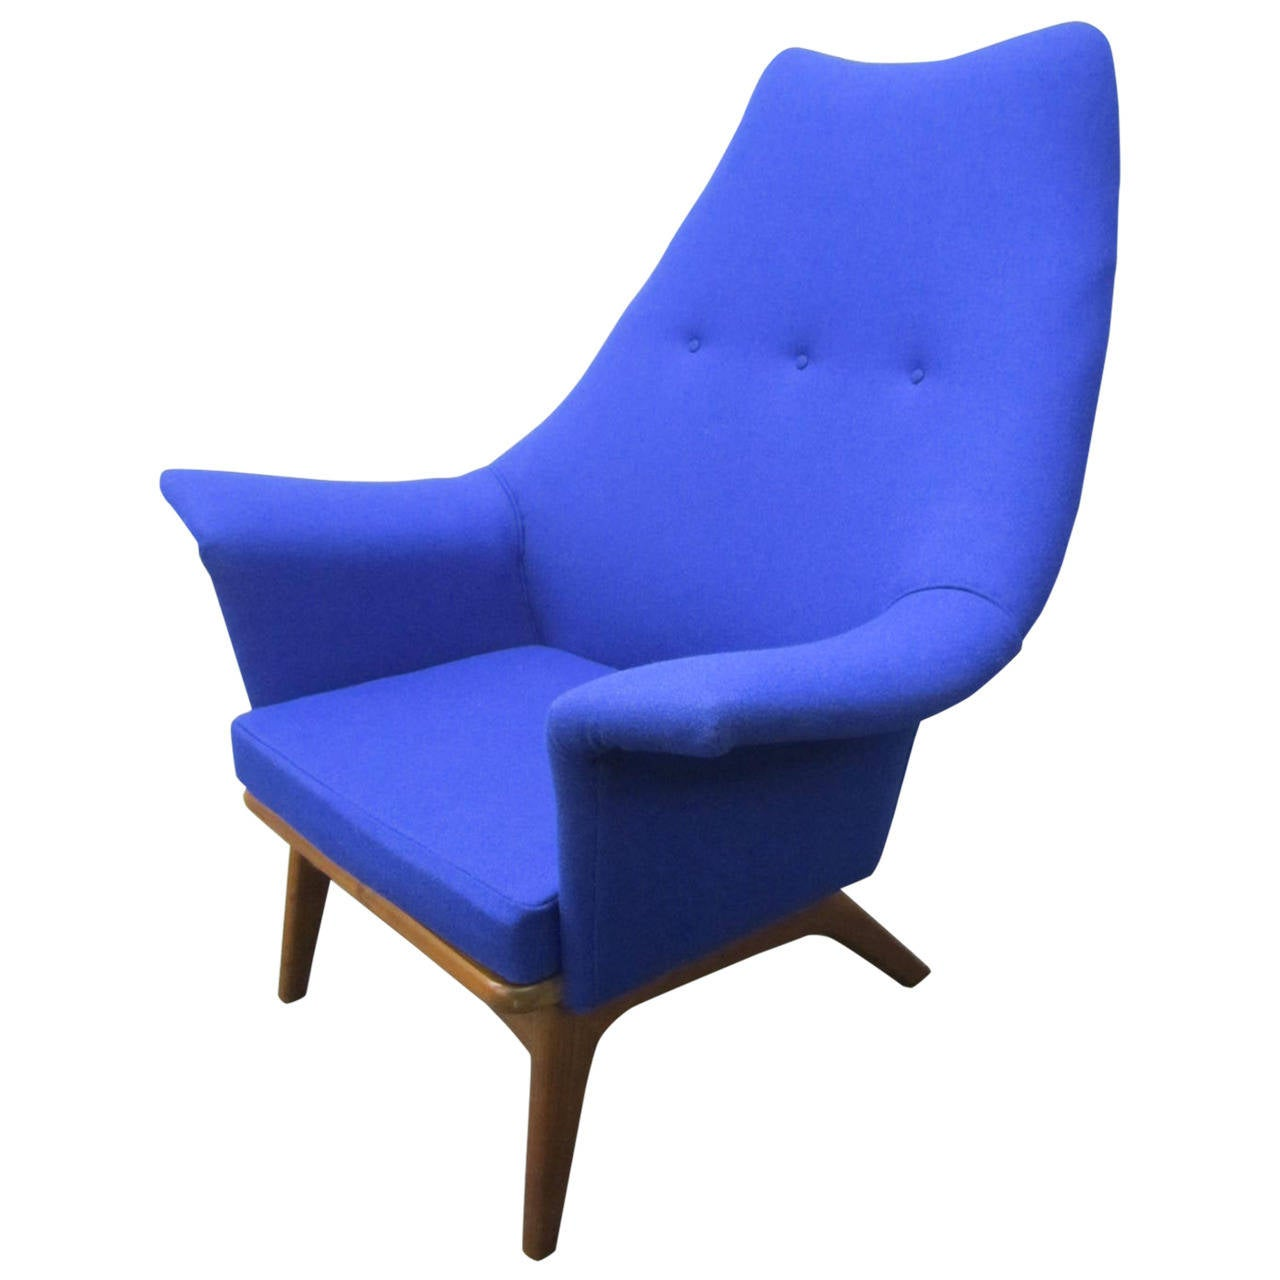 Excellent adrian pearsall sculptural walnut wingback lounge chair mid century at 1stdibs - Excellent furniture ...